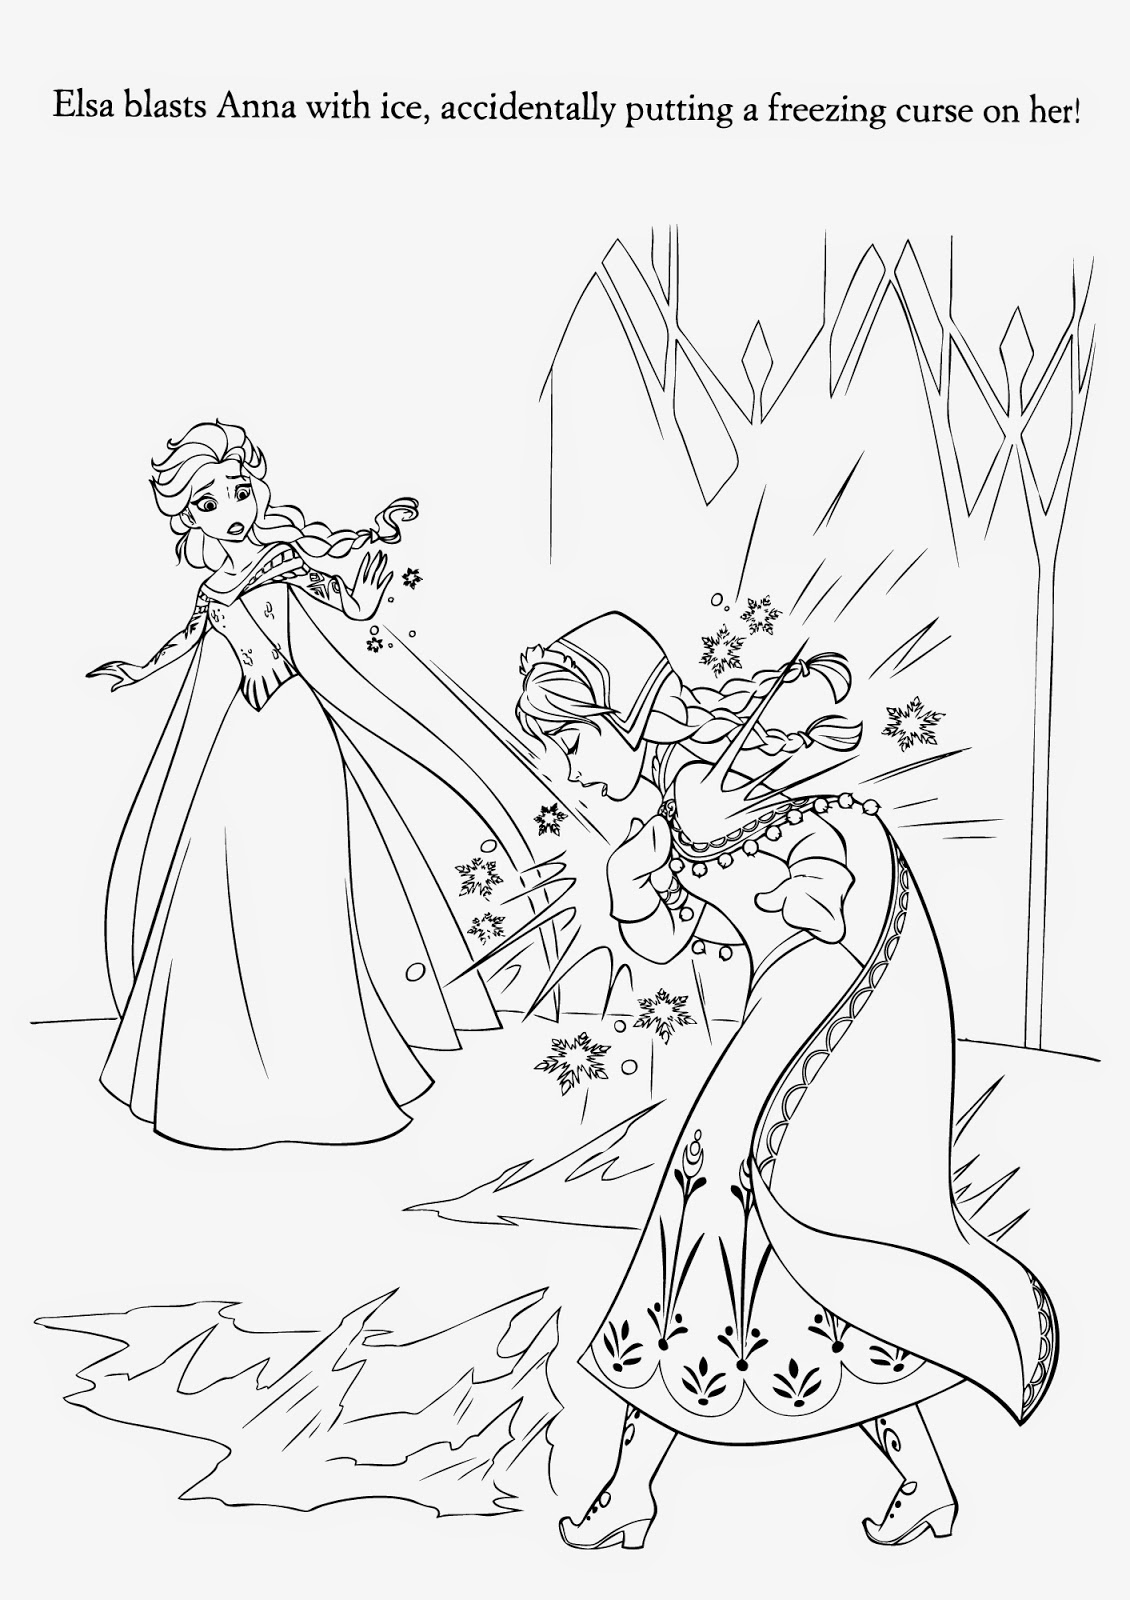 frozen movie coloring pages frozen 71712 animation movies printable coloring pages coloring frozen pages movie